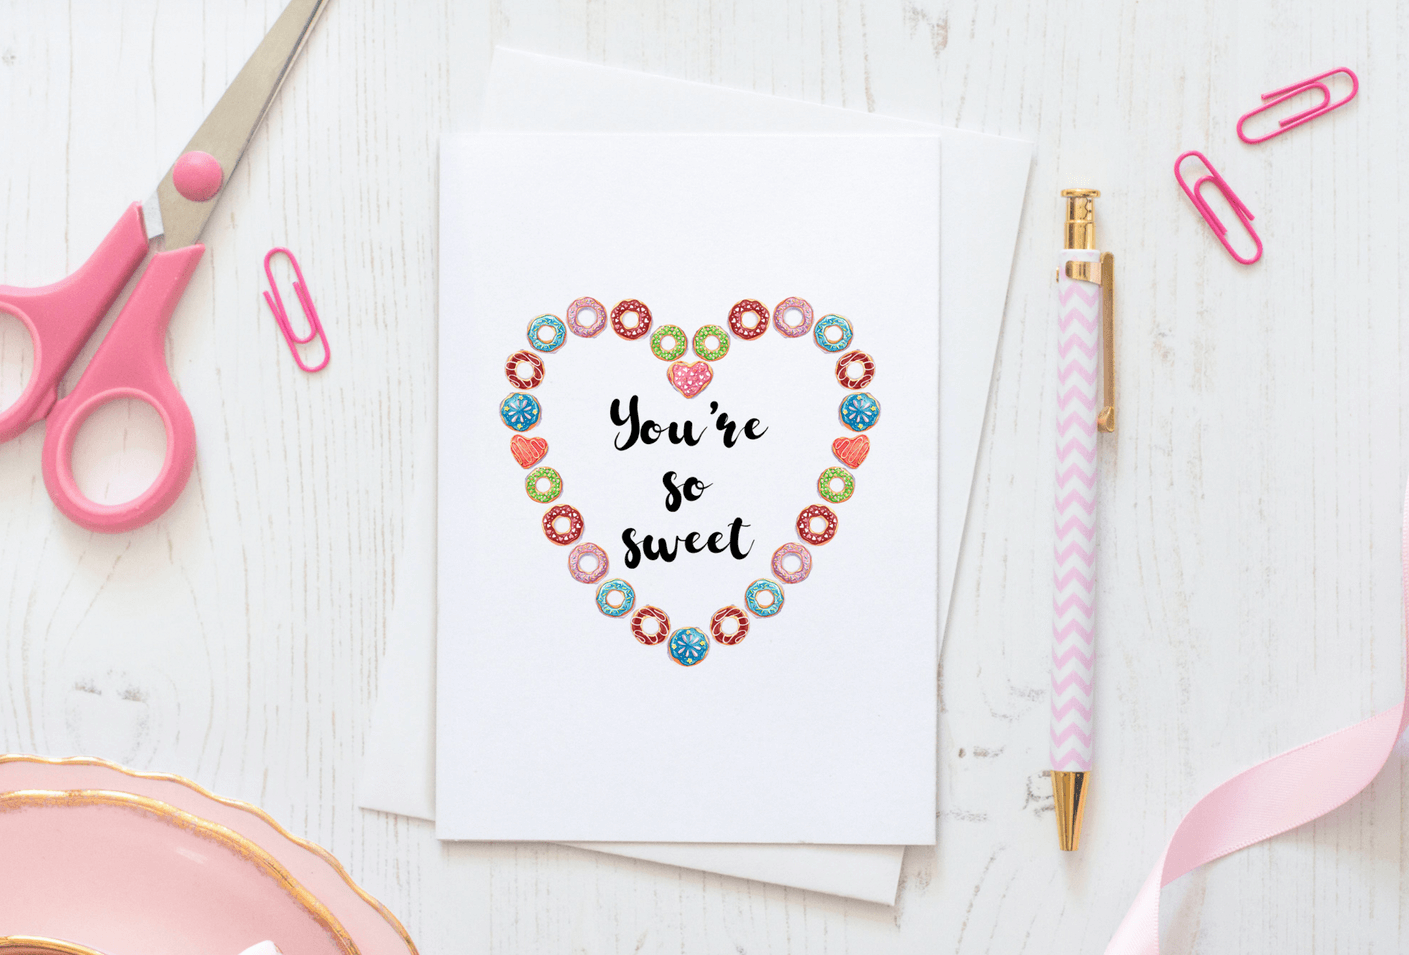 It's doughnut time! Download a free Thank You doughnut themed greeting card. This cute free printable DIY card with a pretty watercolor illustration donut design on the front and inside of the card. Click to read more and download your card at www.trueblissdesigns.com now. #freeprintable #greetingcards #thankyou